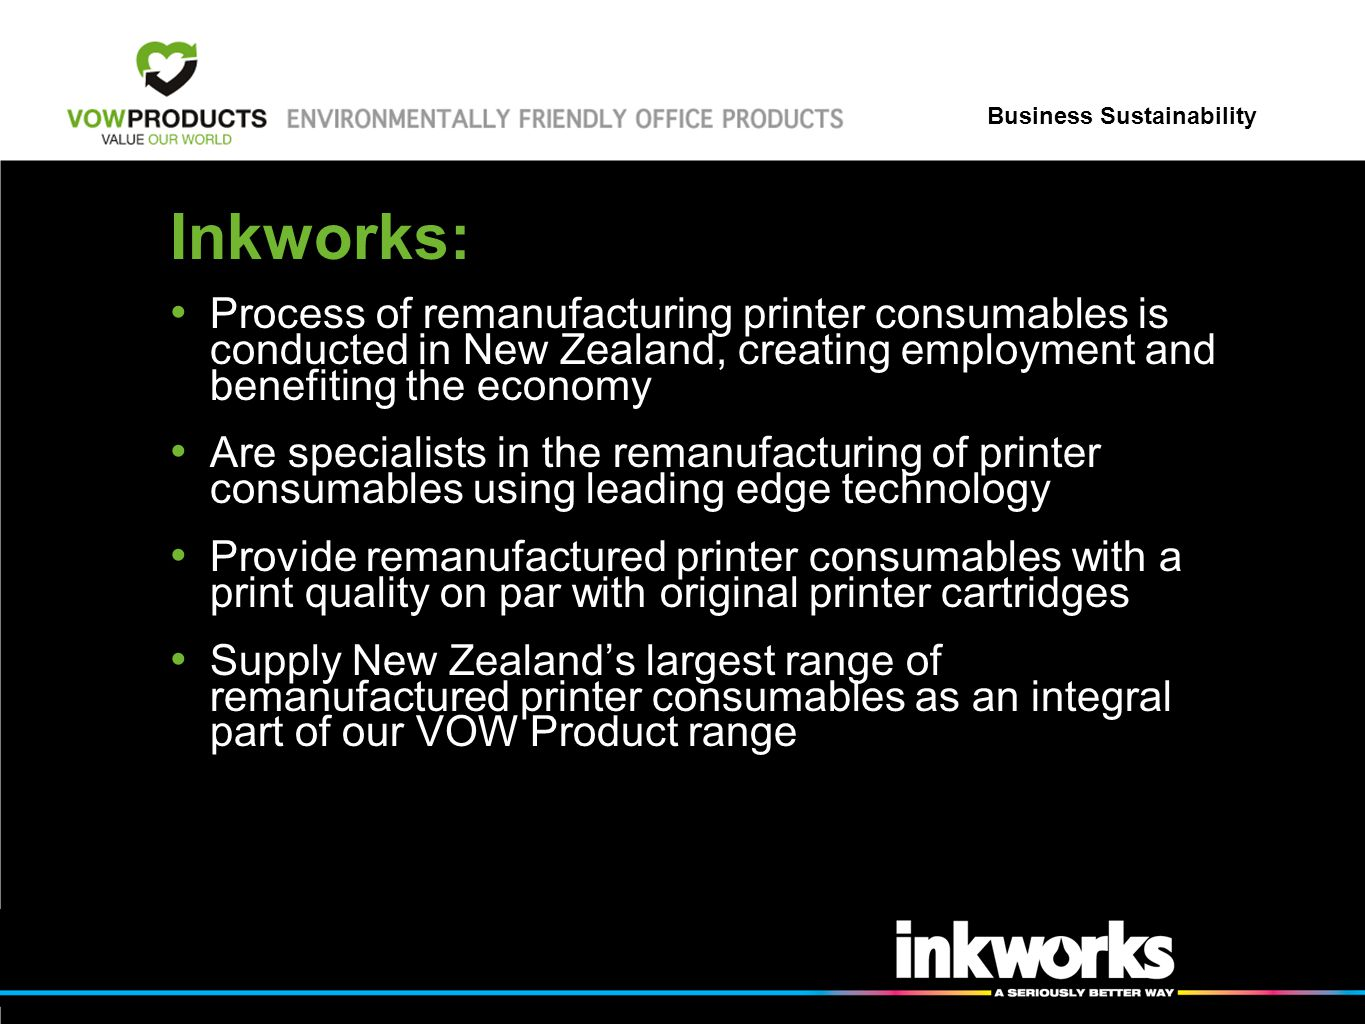 Business Sustainability Inkworks: Process of remanufacturing printer consumables is conducted in New Zealand, creating employment and benefiting the economy Are specialists in the remanufacturing of printer consumables using leading edge technology Provide remanufactured printer consumables with a print quality on par with original printer cartridges Supply New Zealands largest range of remanufactured printer consumables as an integral part of our VOW Product range